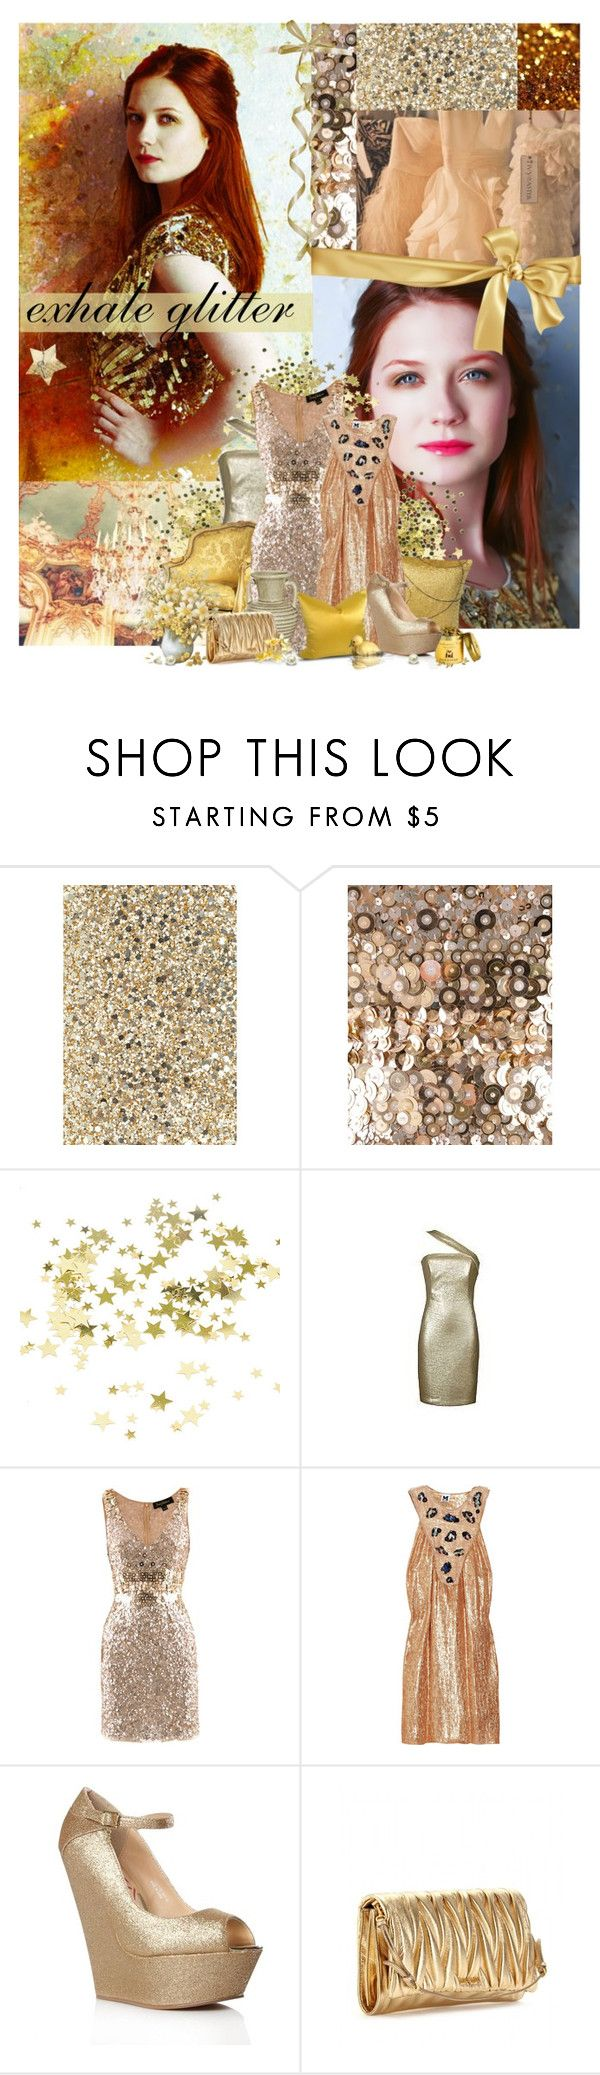 """""""[The Brit Chicks Challenge] 9. Bonnie Wright"""" by ruh-dias ❤ liked on Polyvore featuring Anya Hindmarch, Jenny Packham, Twenty, Missoni, Eda, Lipsy, Miu Miu, sequins, sequined dresses and glitter"""